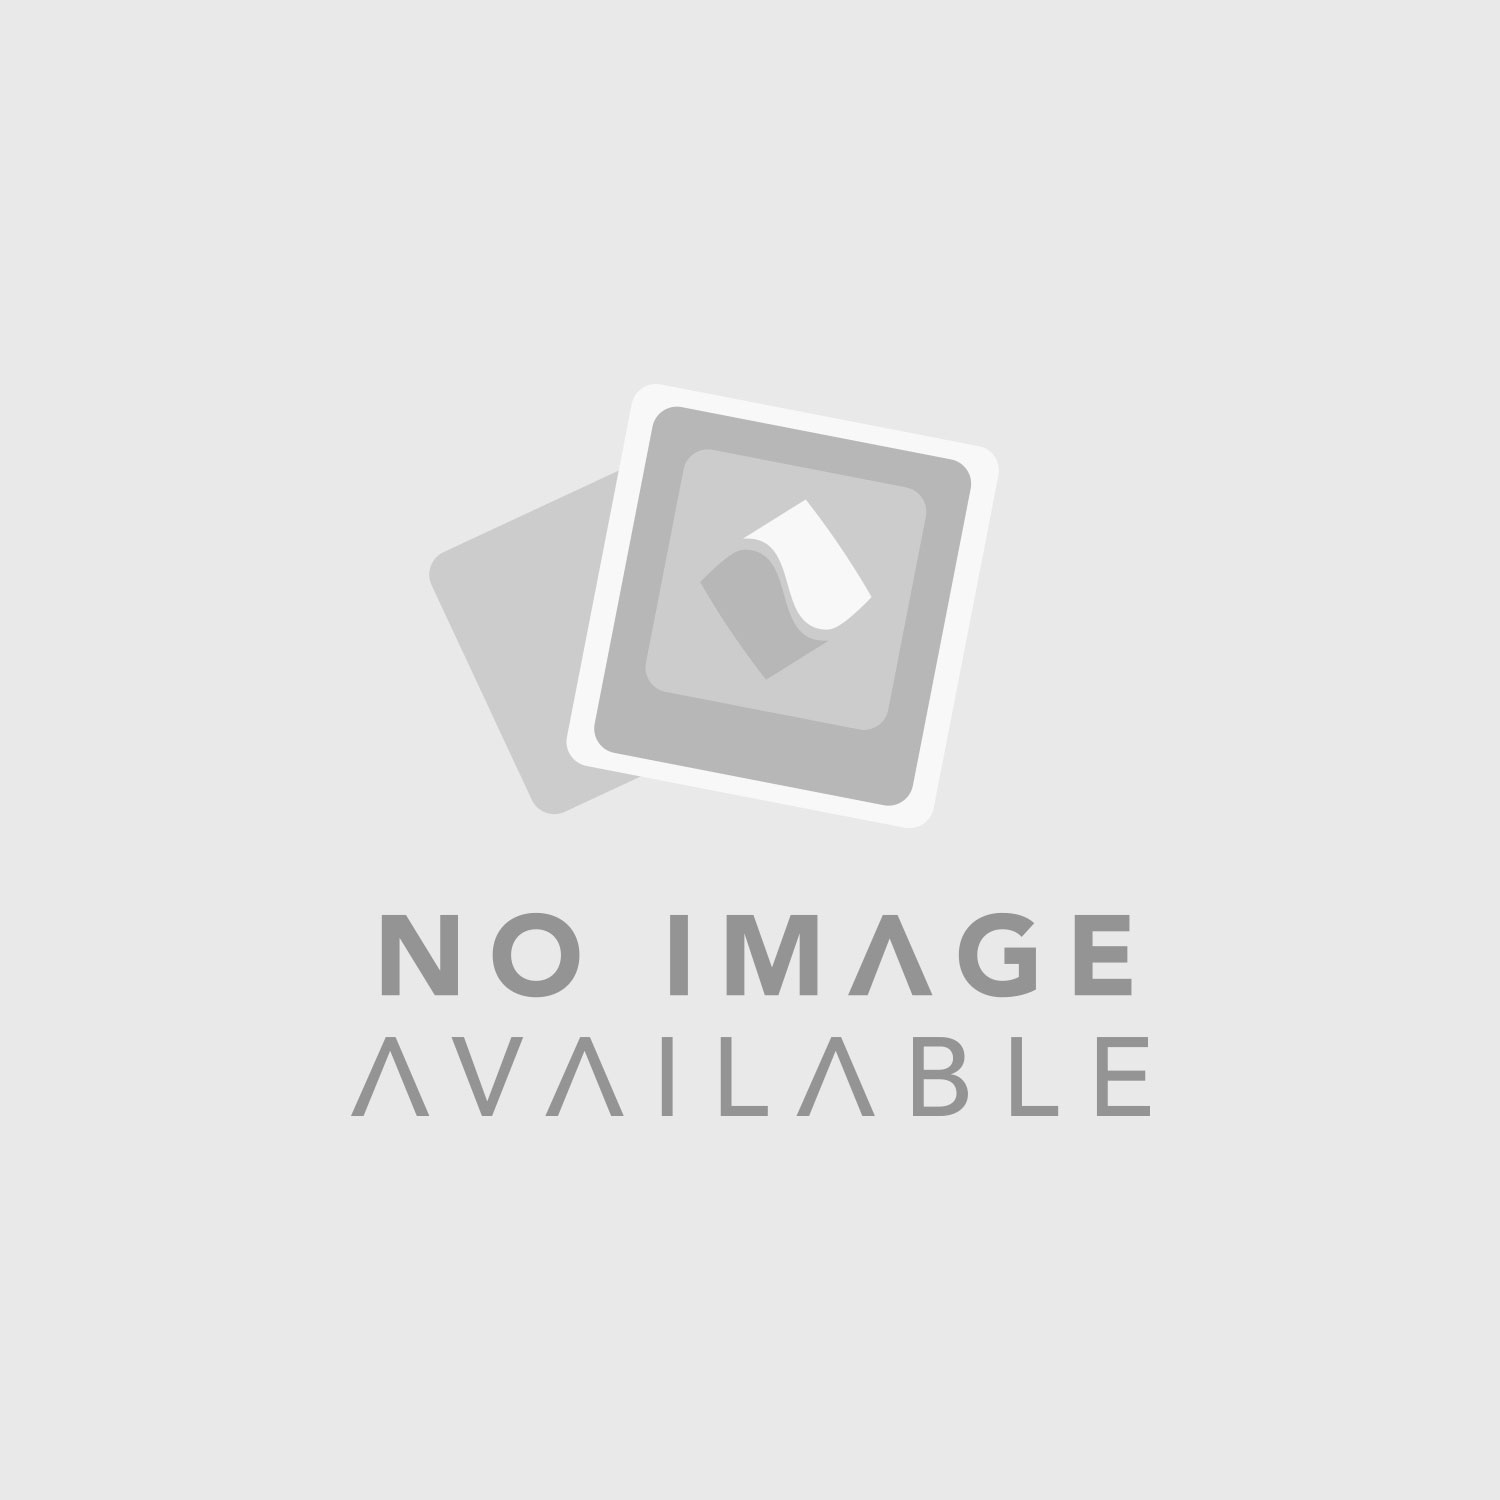 Doug Fleenor DININTR DMX512 DIN-Rail Mounted Interface